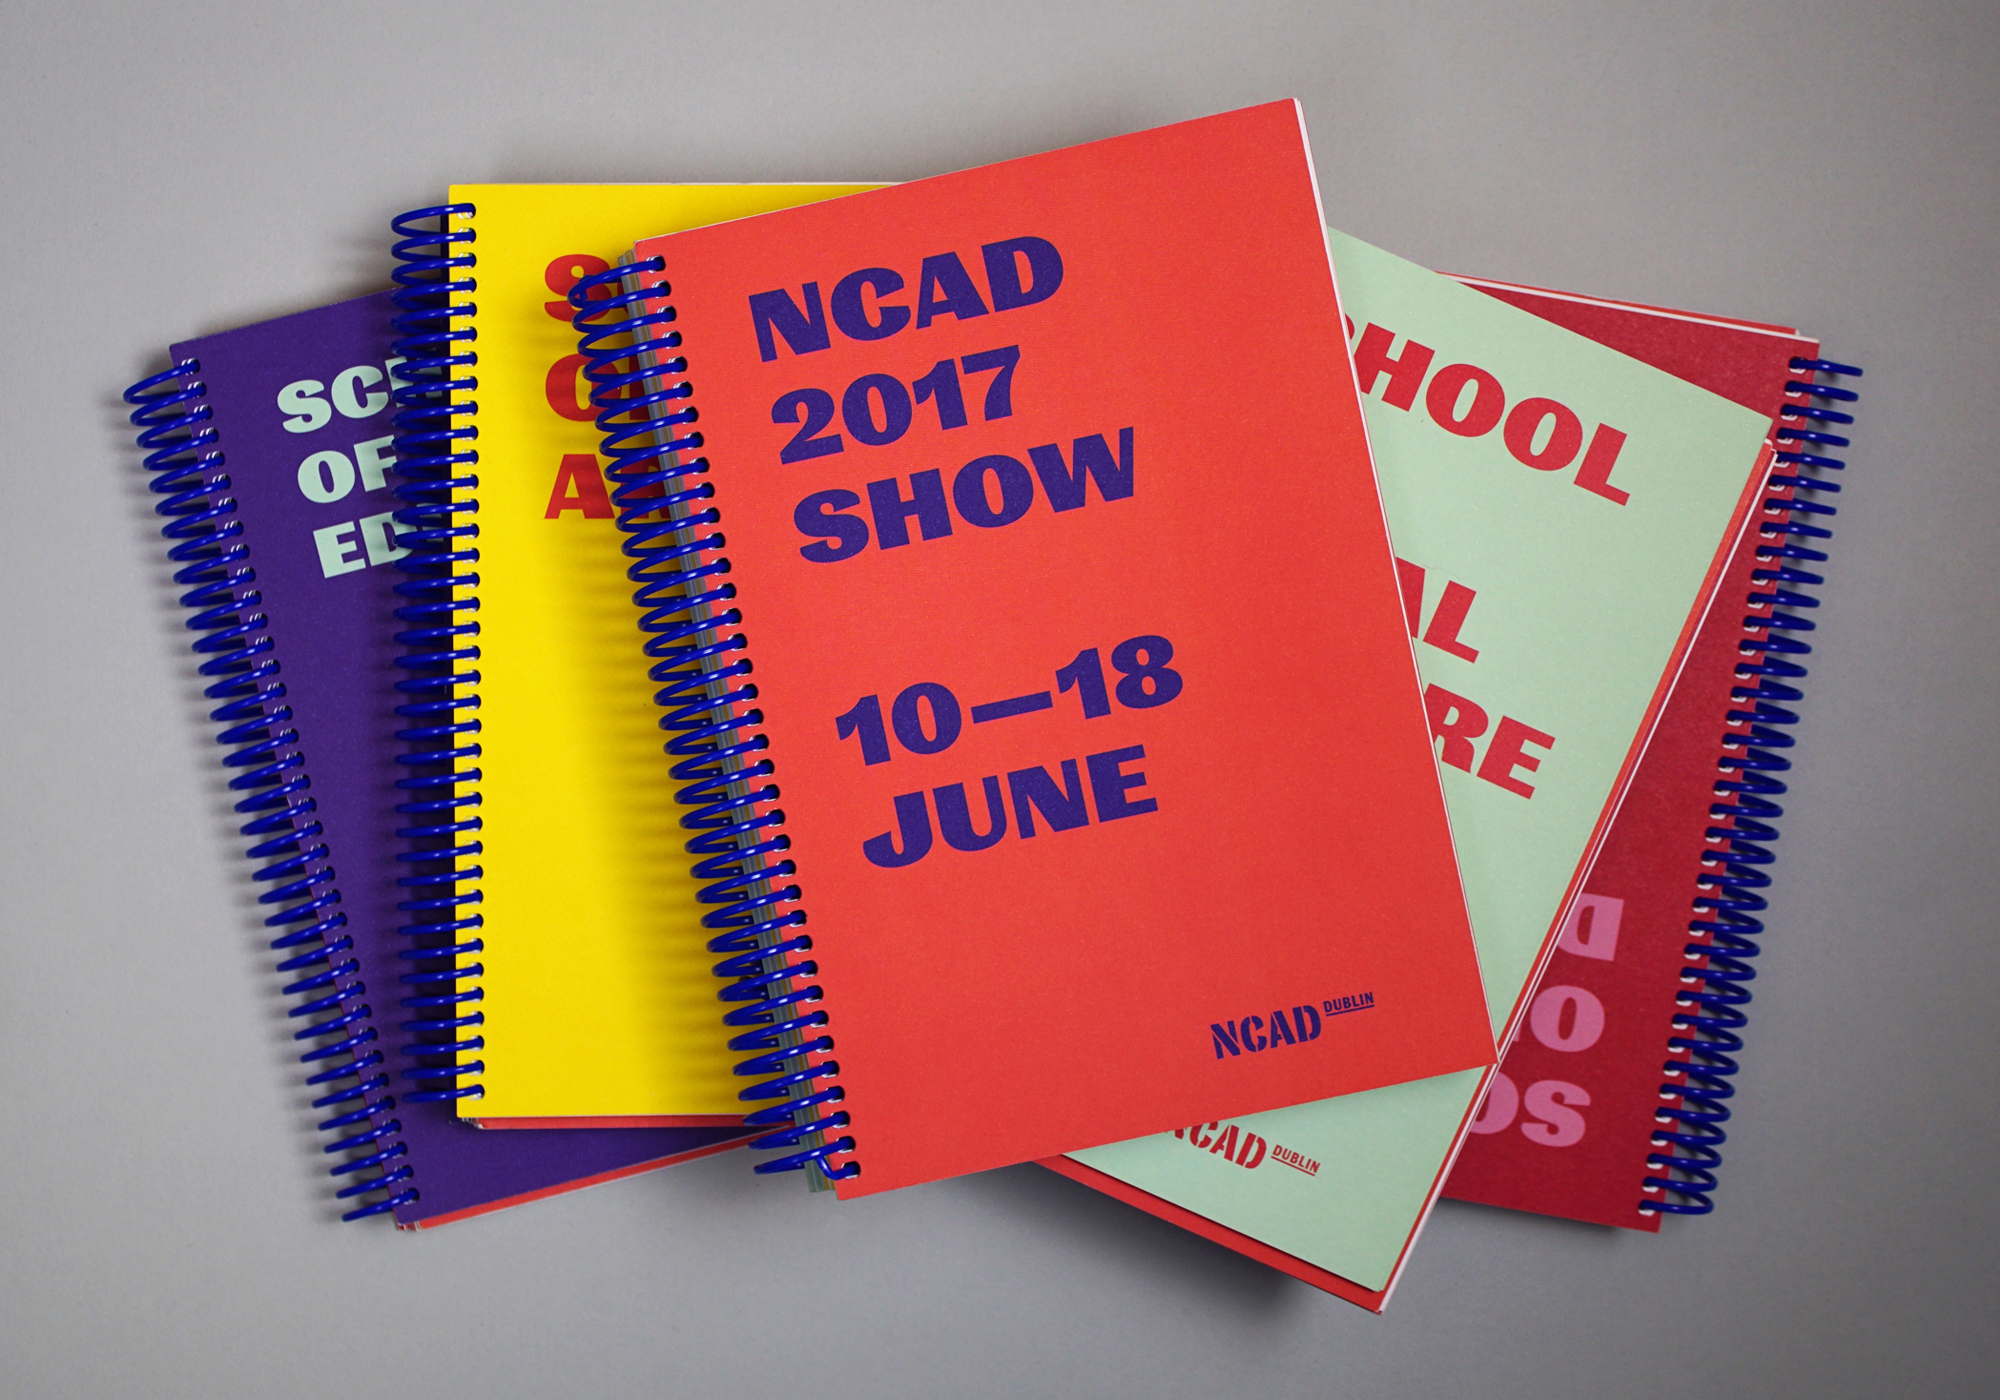 Cover image: NCAD 2017 Show